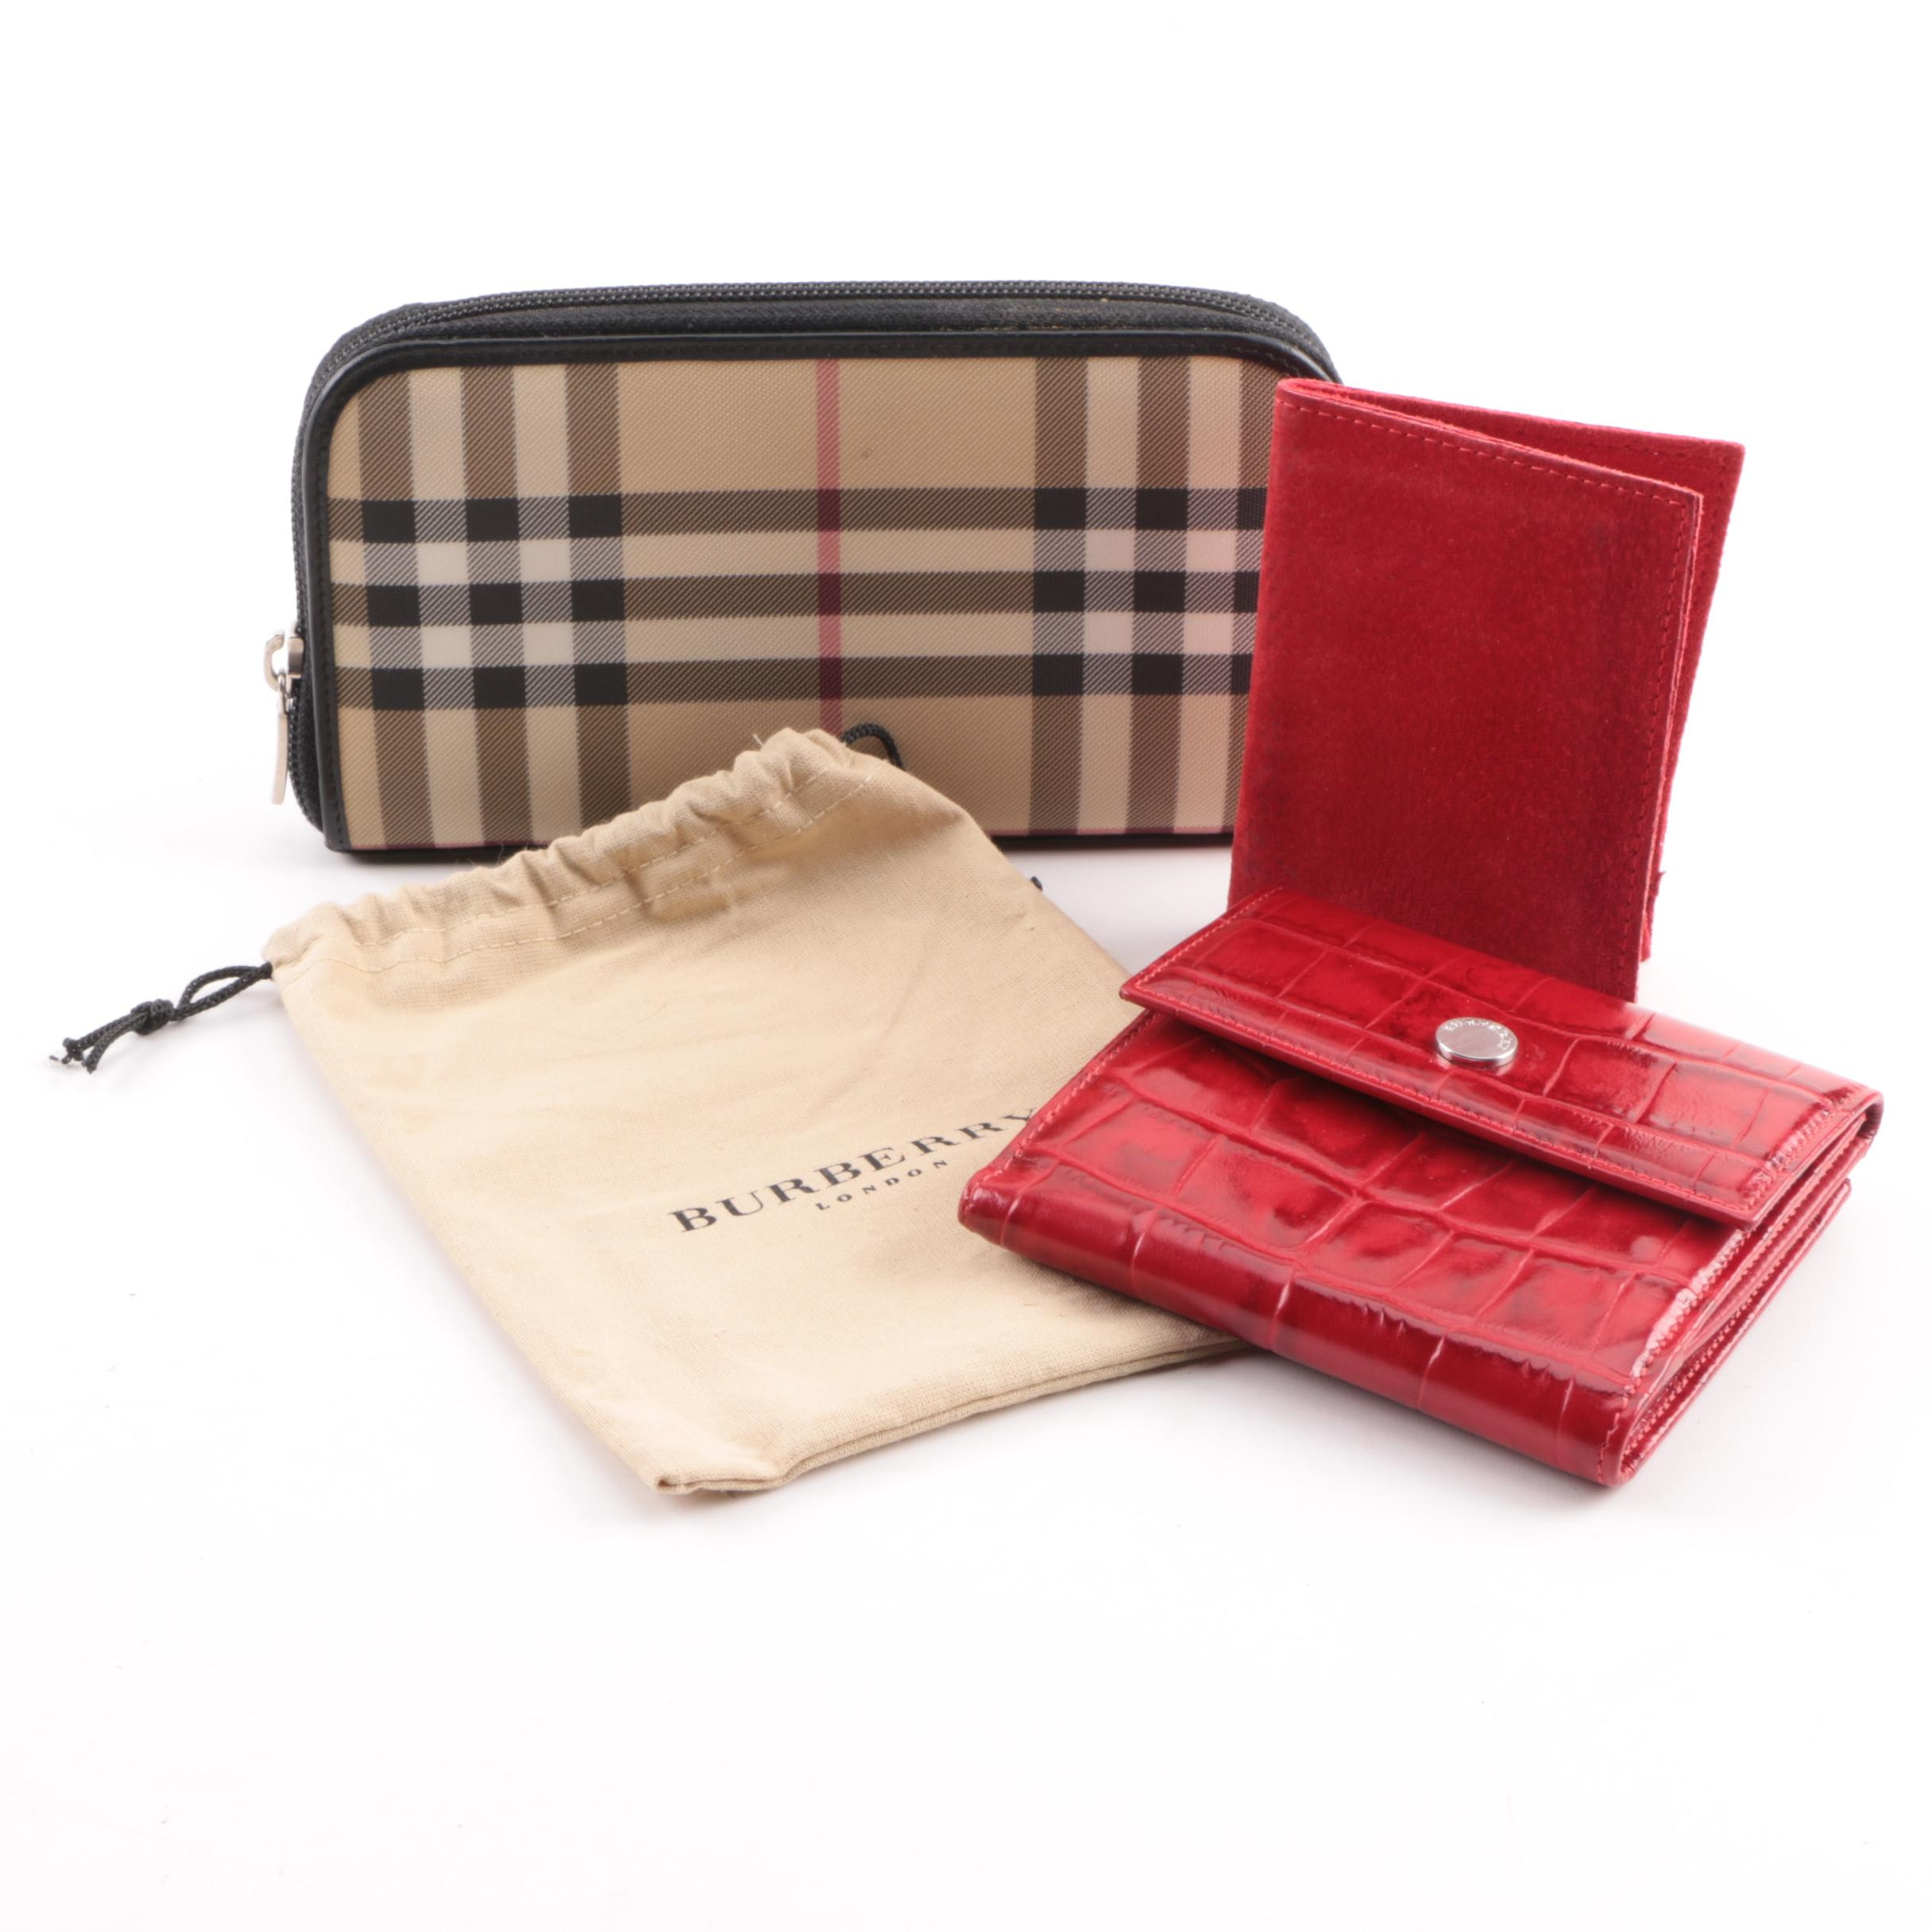 Burberry Coated Canvas and Embossed Leather Wallets with Cartier Suede Envelope